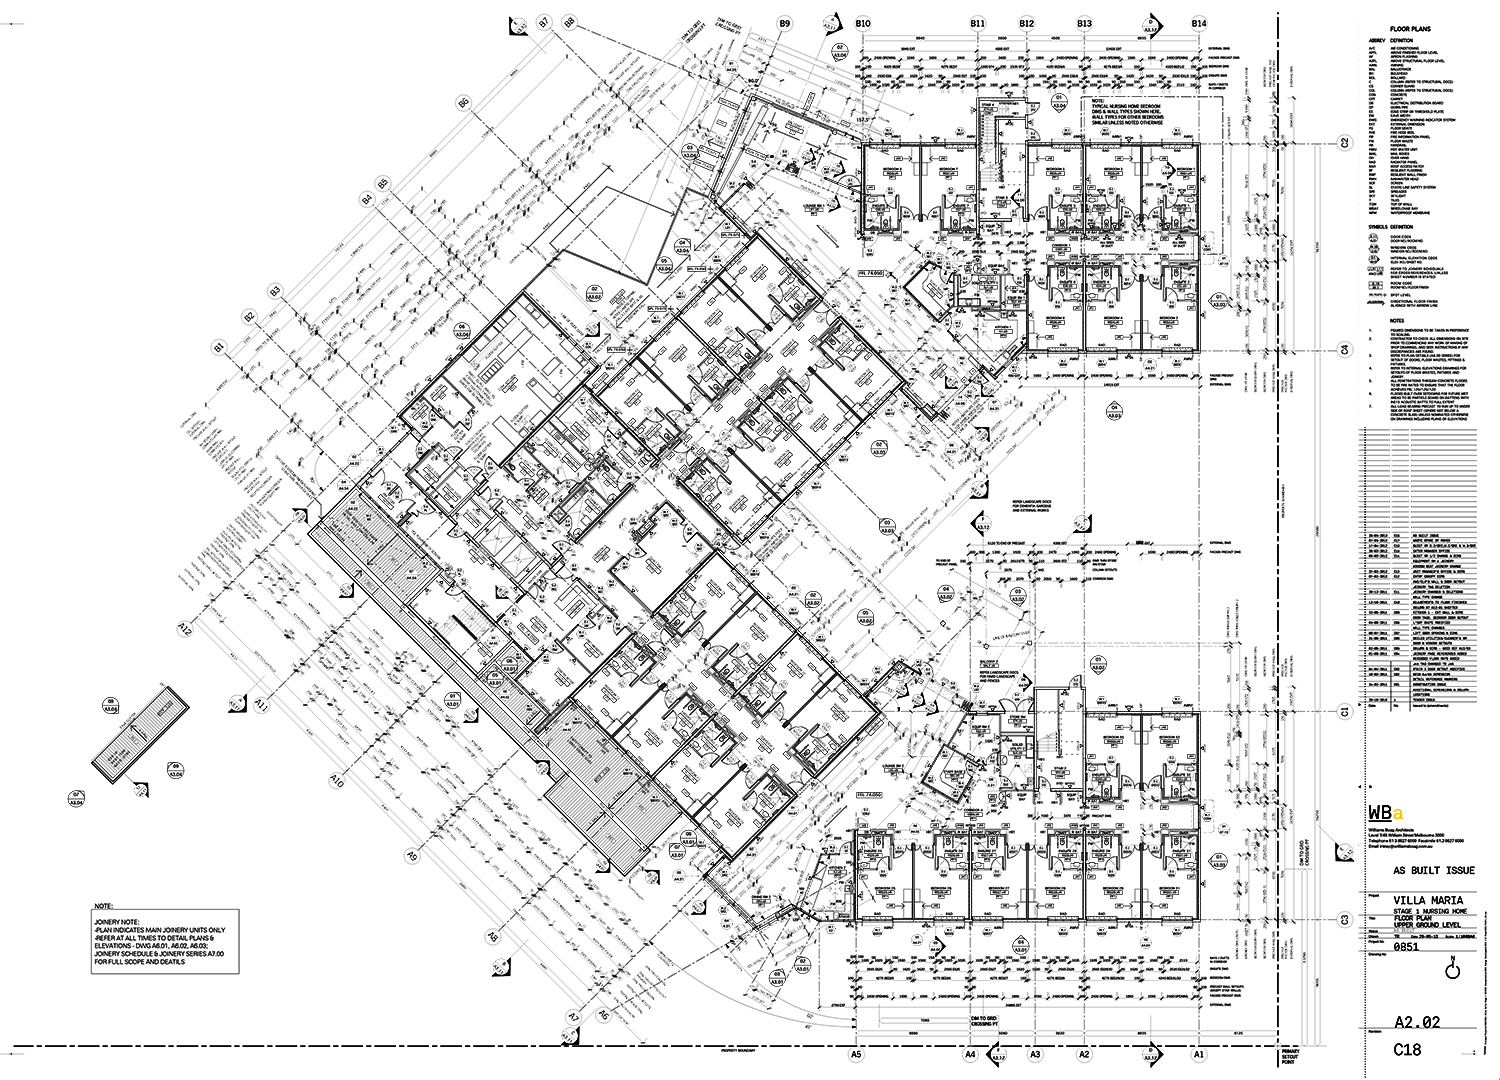 Plan of One Nursing Home Level